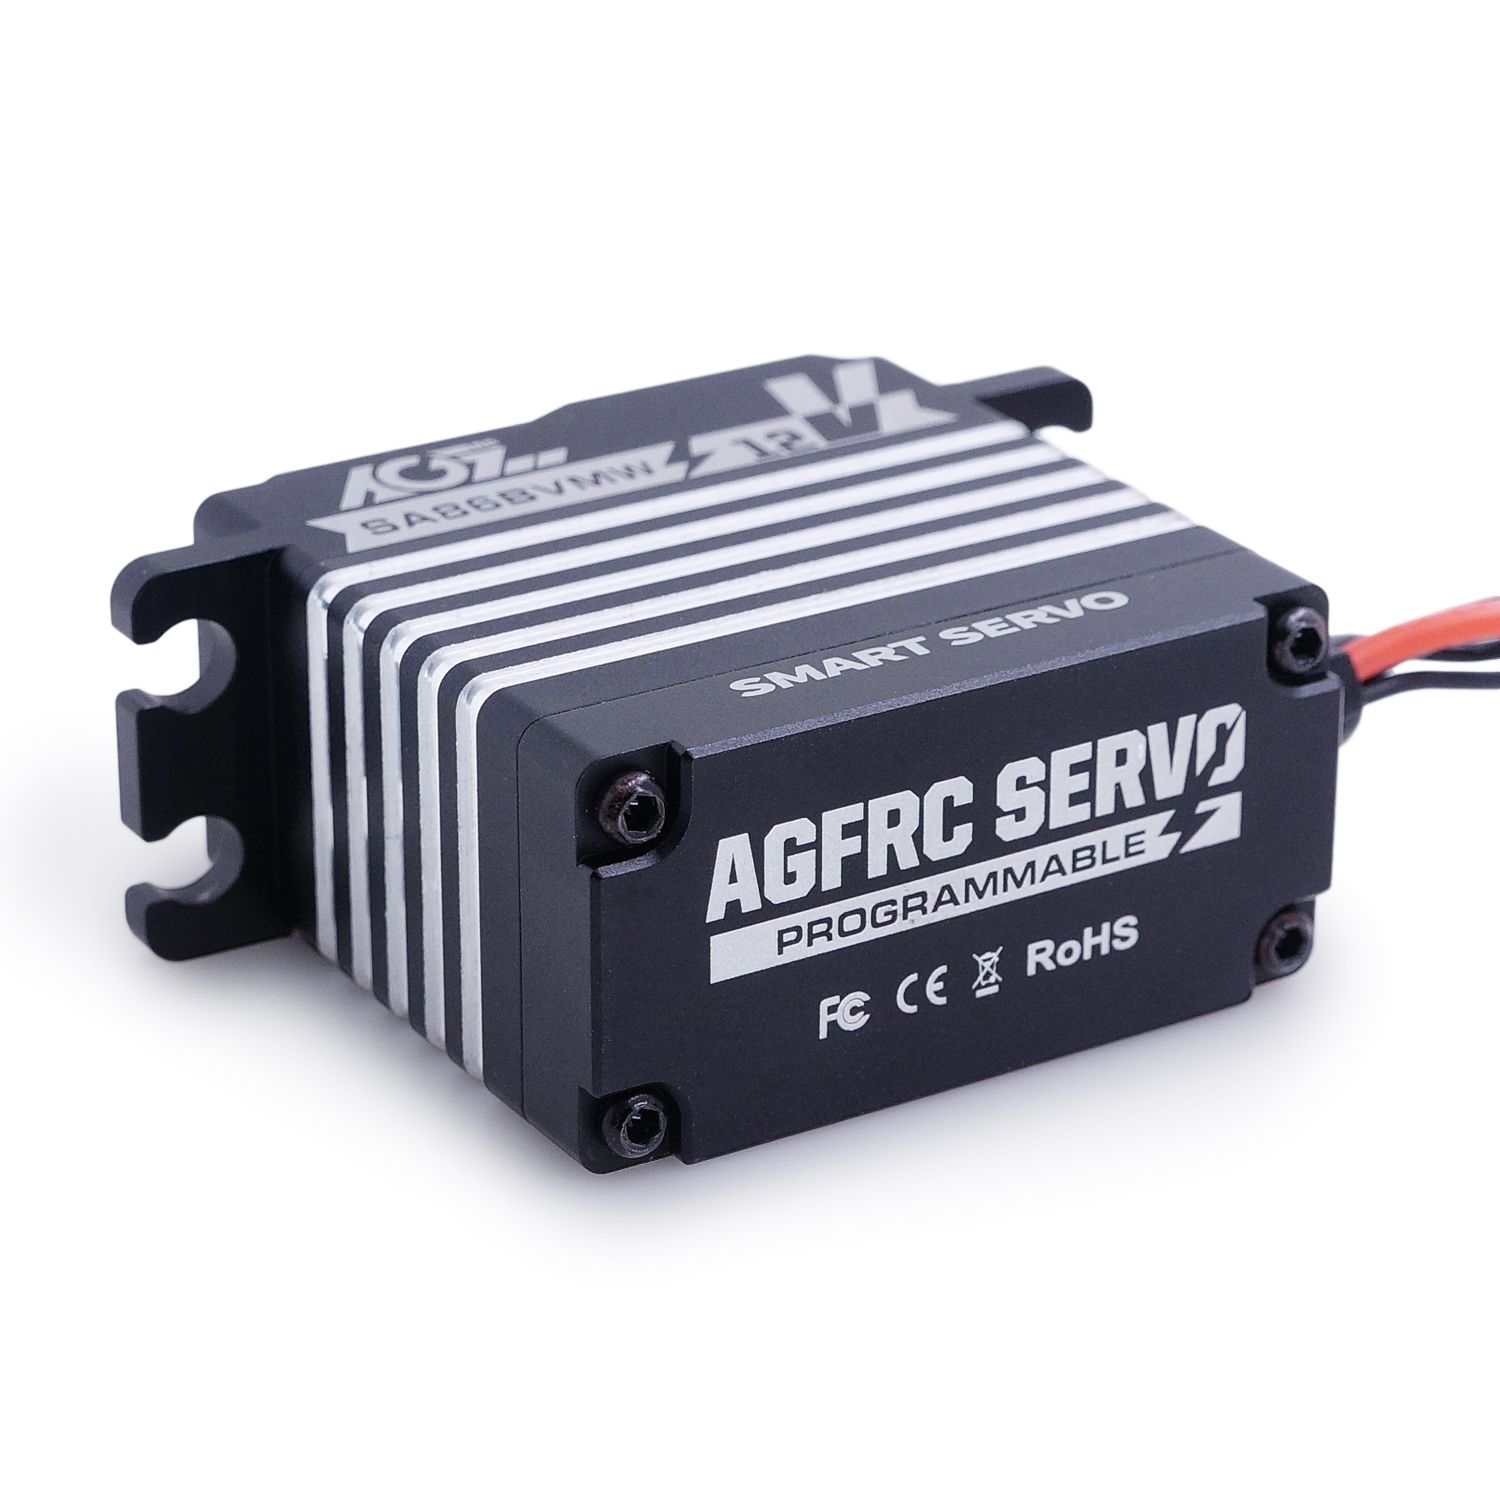 AGFrc SA86BVMW High Torque IP67 Waterproof Brushless 3s Servo Winch